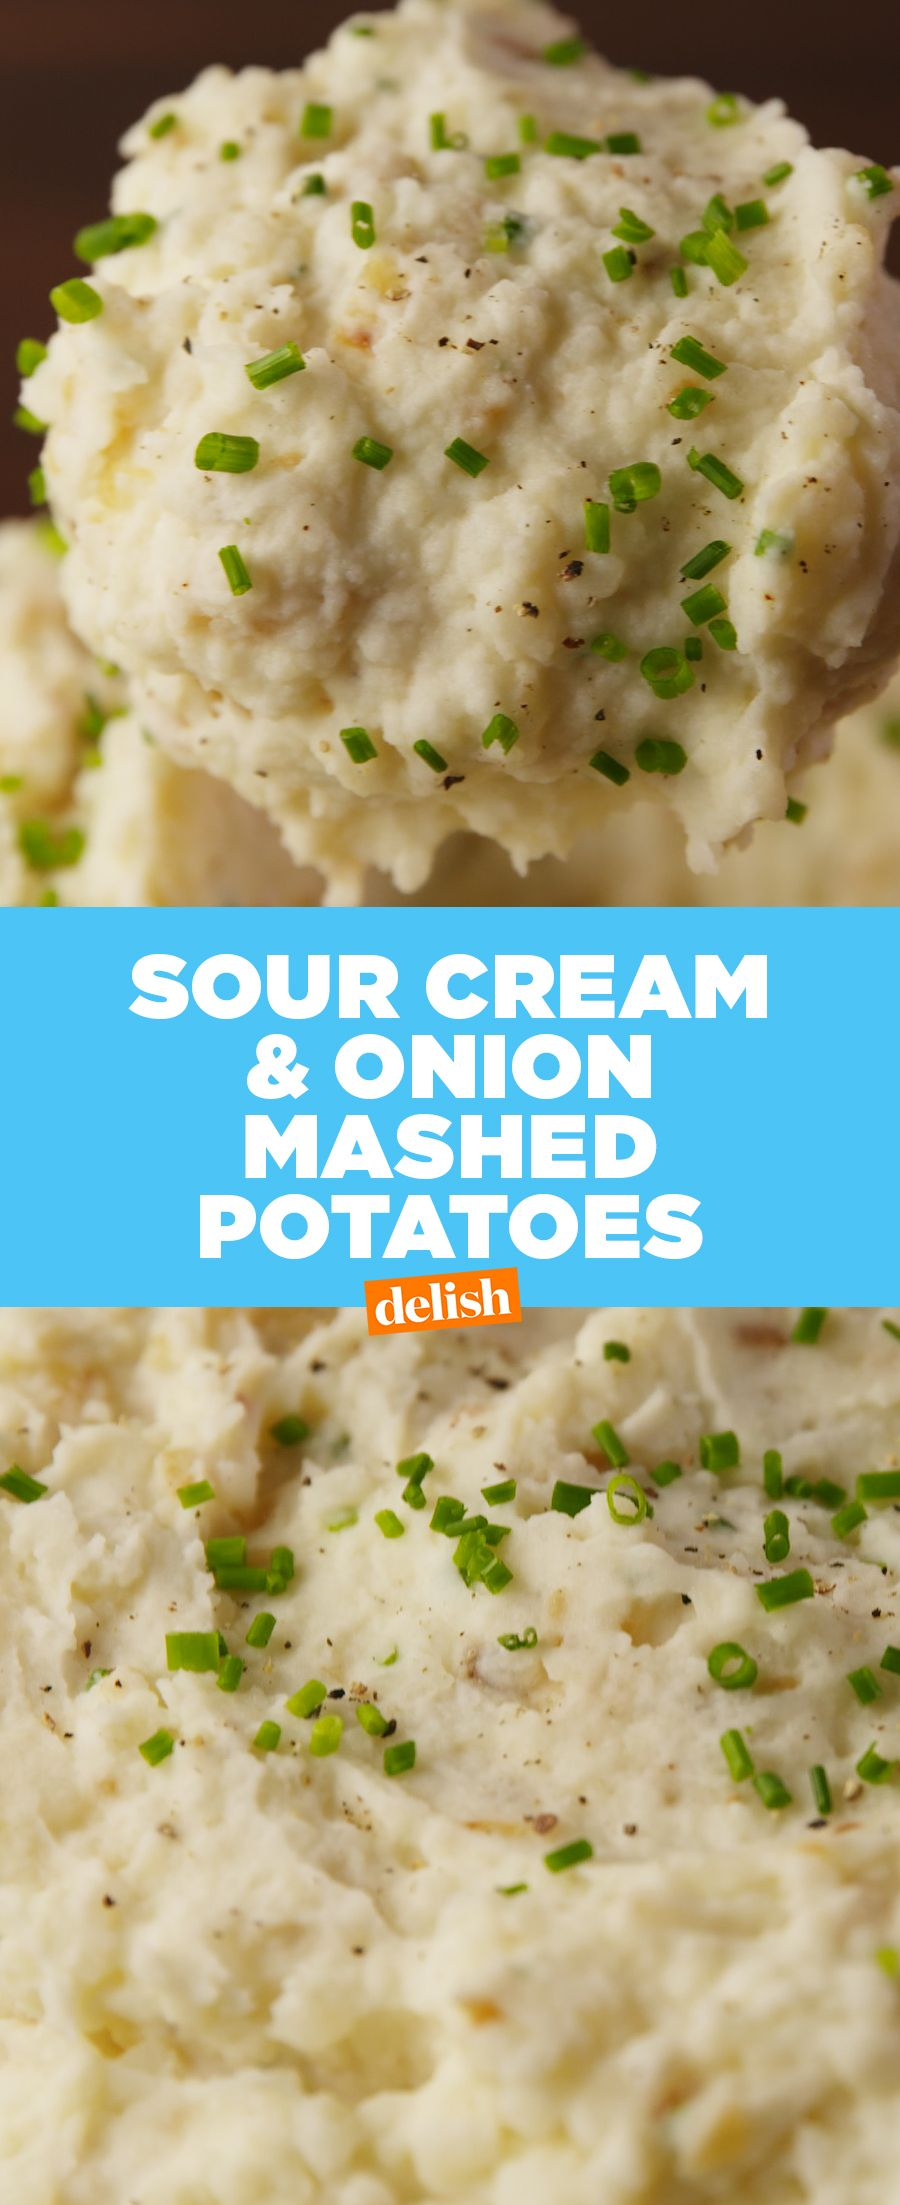 These Sour Cream Onion Mashed Potatoes Will Slay Your Thanksgiving Dinner Recipe Mashed Potatoes Creamed Onions Sour Cream And Onion